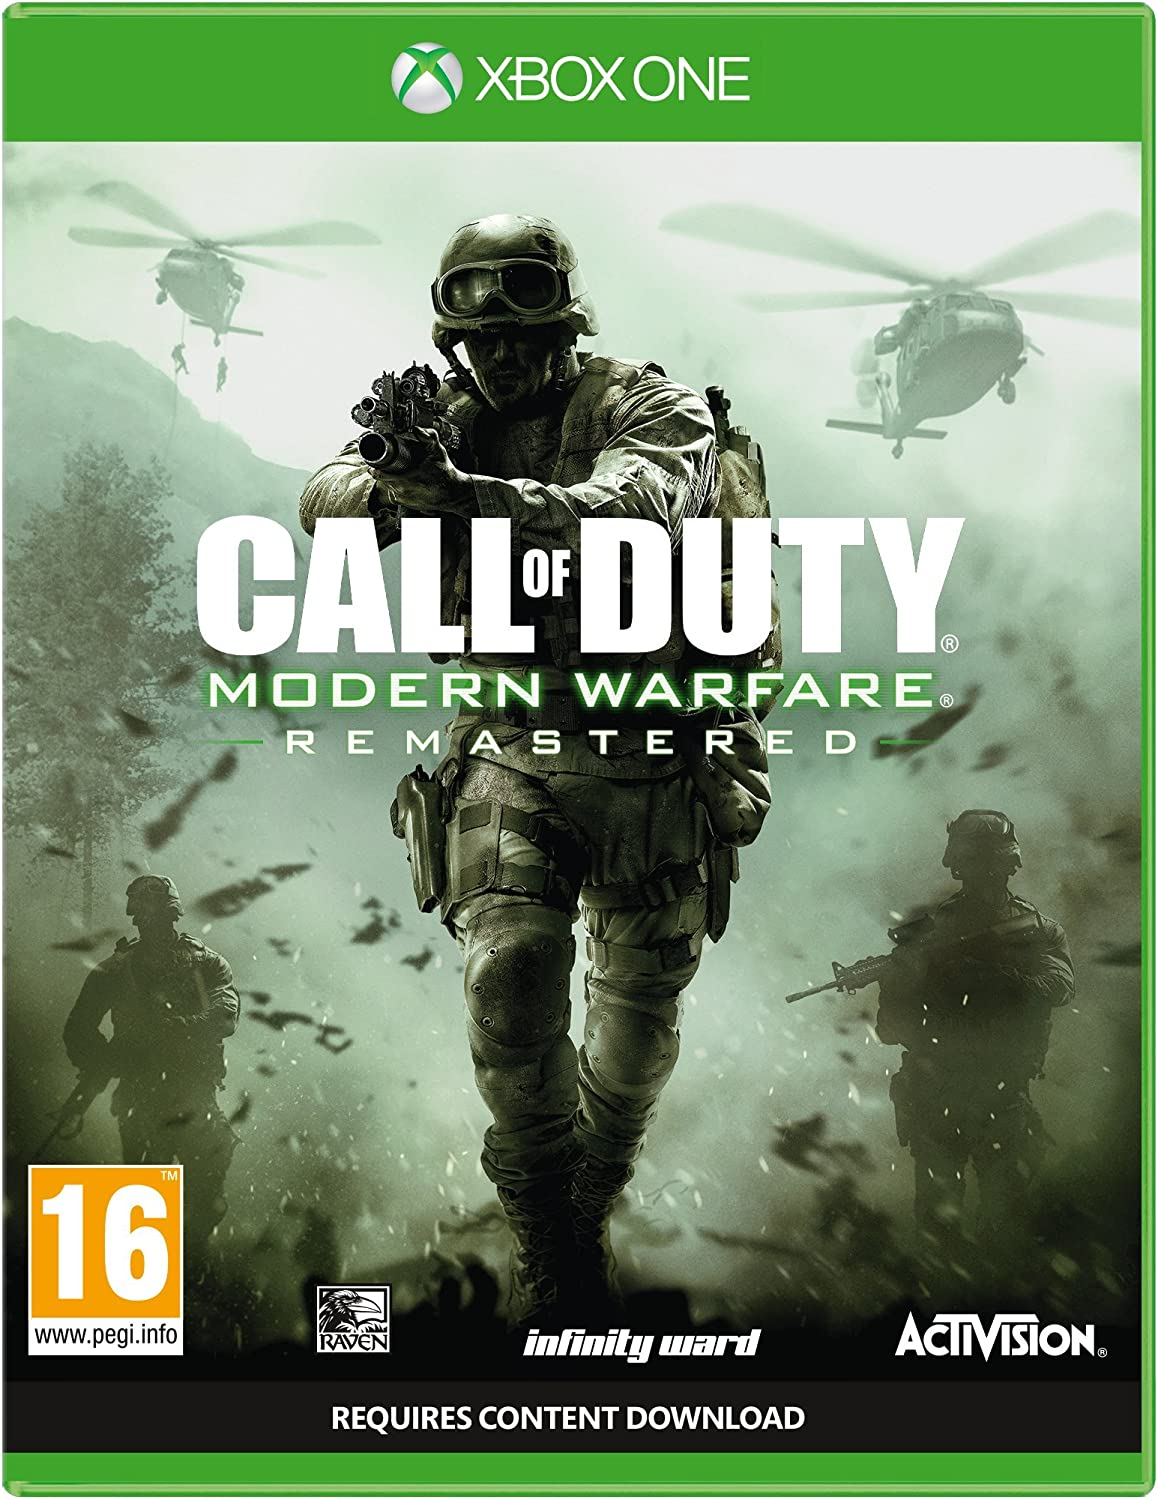 Call of Duty 4: Modern Warfare - Remastered: Amazon.es: Videojuegos